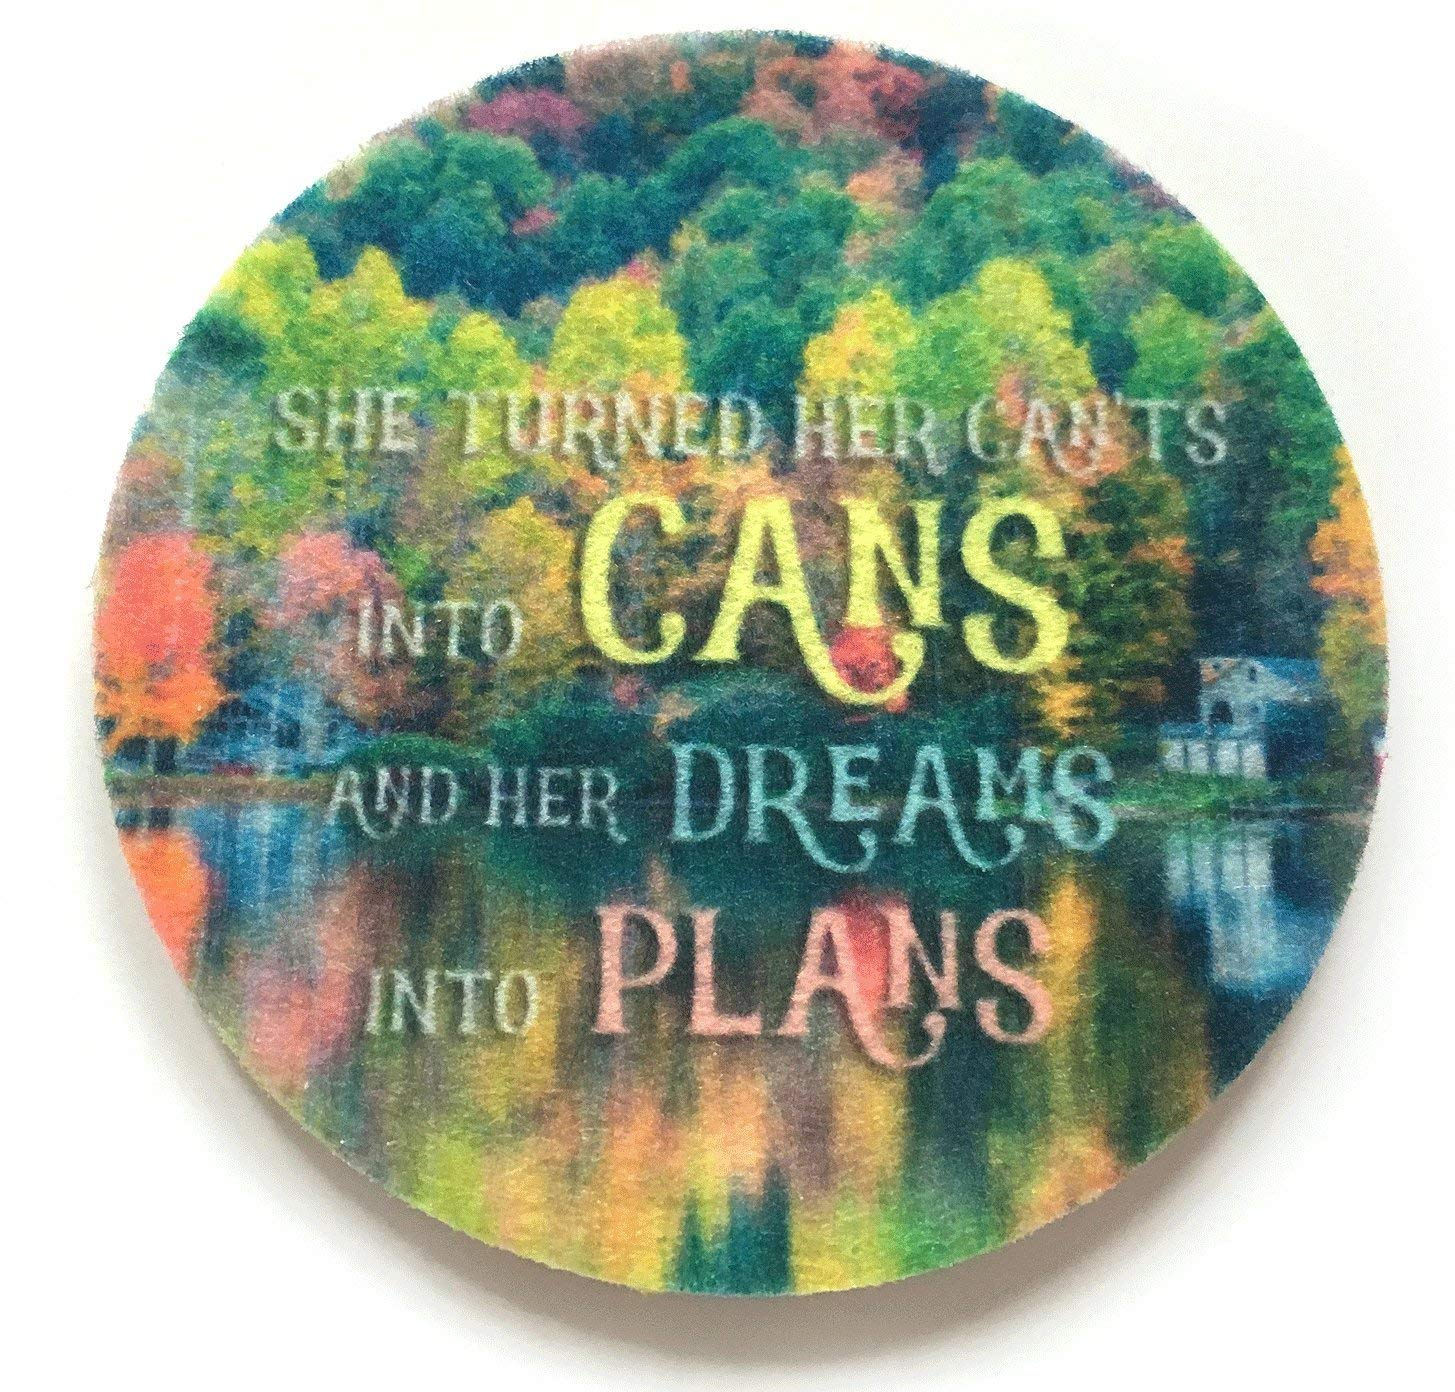 Set of two super absorbent inspirational car coasters for your cars cup holder -Green Product - Contains an Antibacterial Agent-Auto Coaster